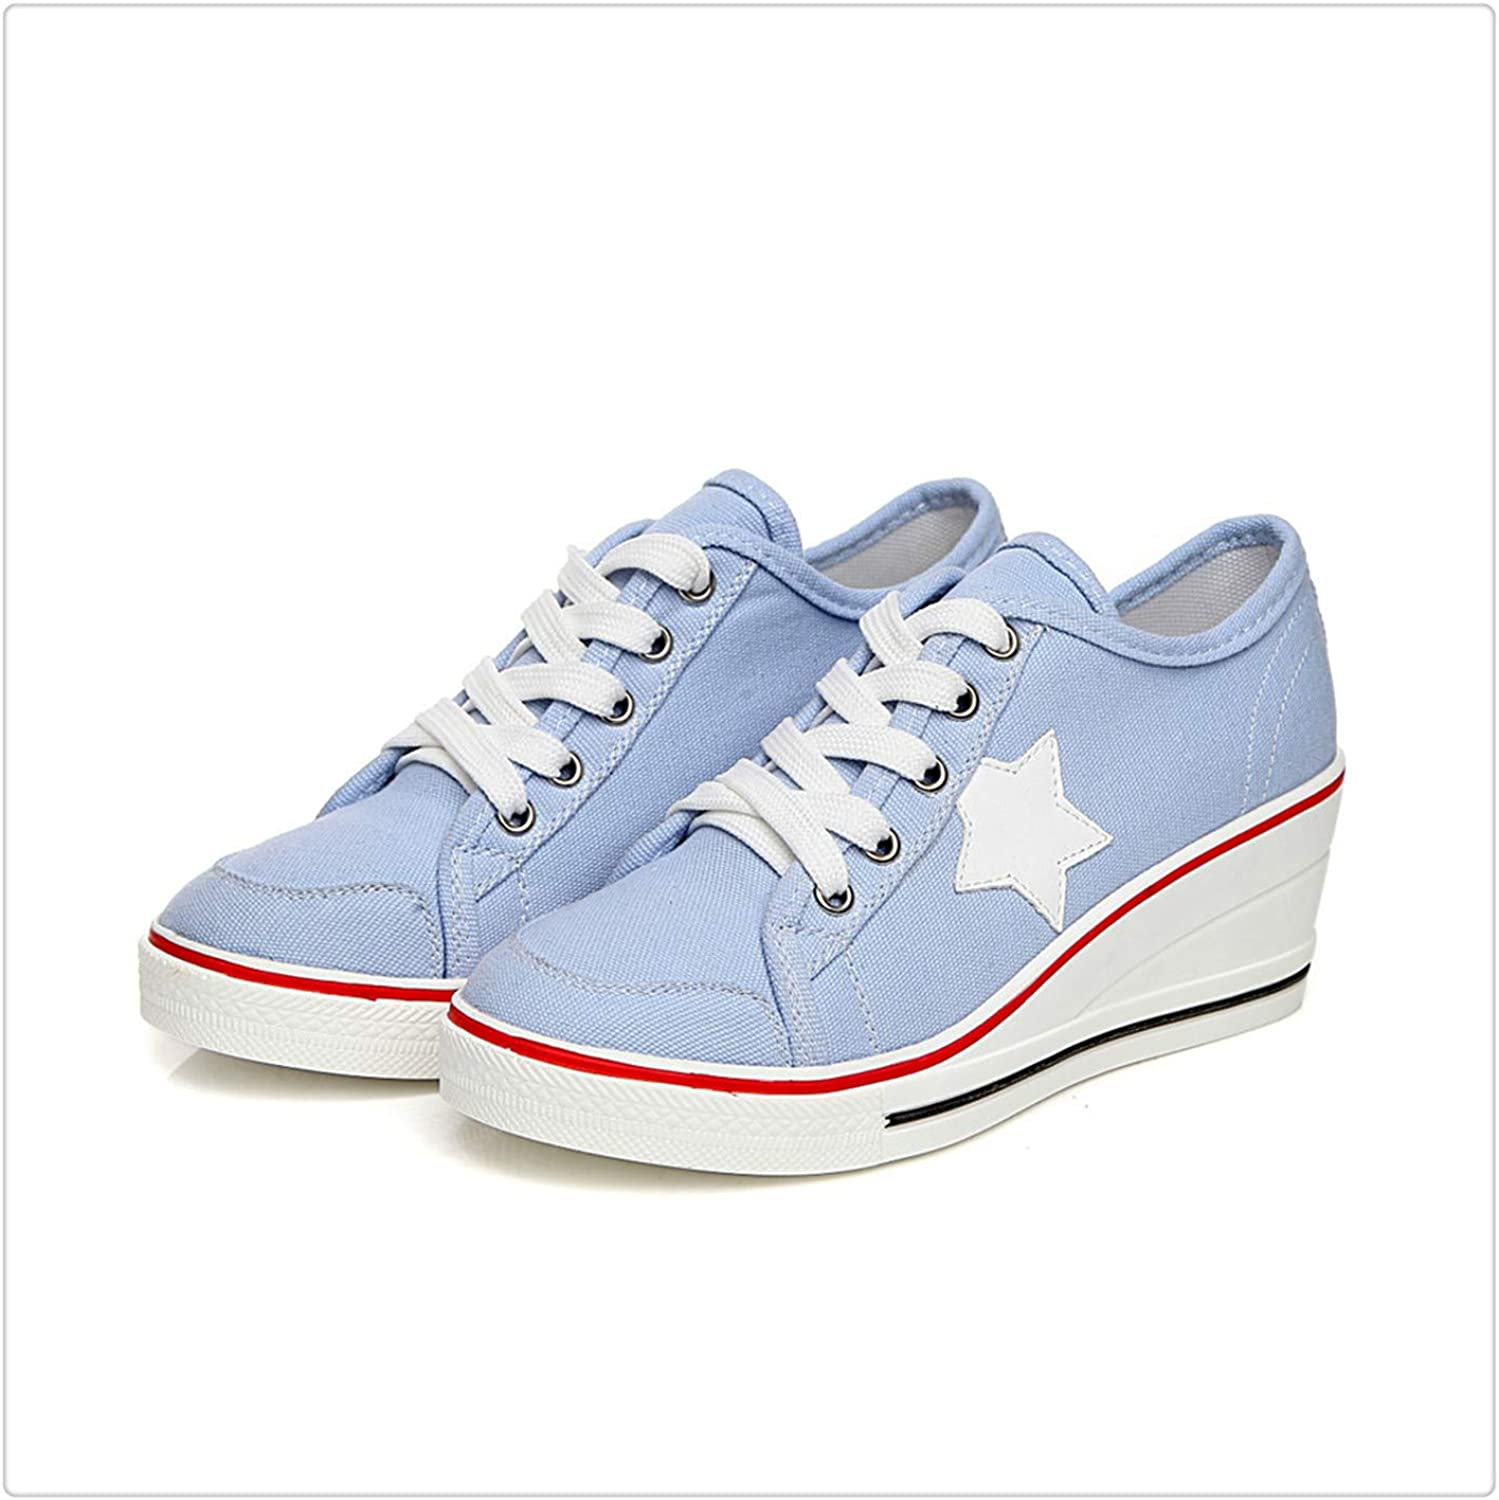 KKEPO& Fashion Women High Wedge Canvas shoes Woman Casual shoes Comfortable Lace Up Platform Sneakers Wedges Denim shoes Breathable 03 bluee 6